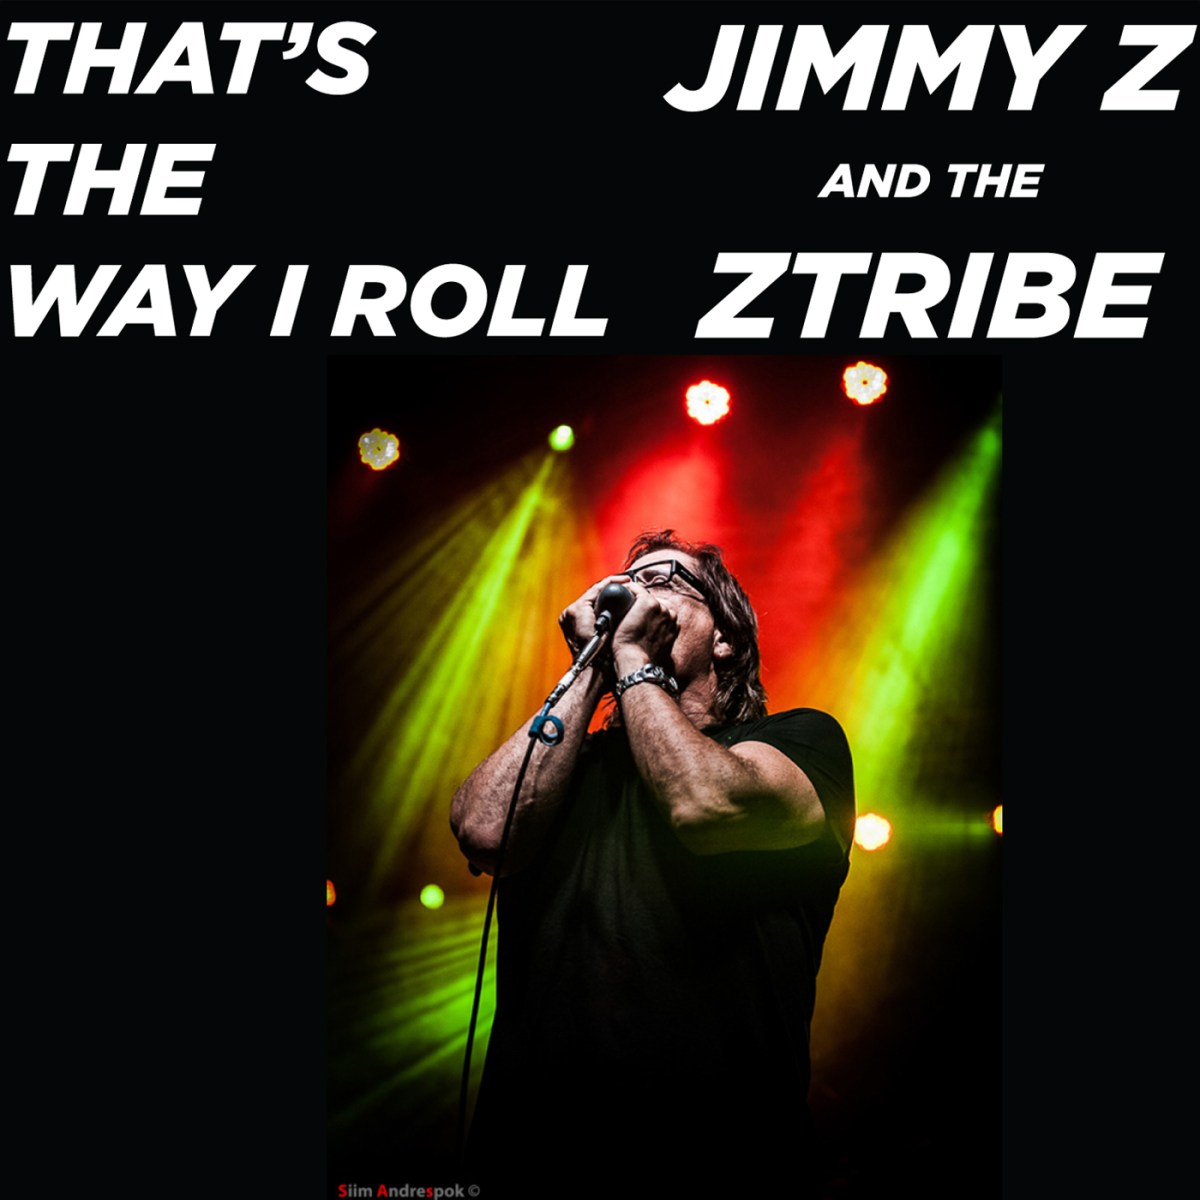 That's The Way I Roll CD cover